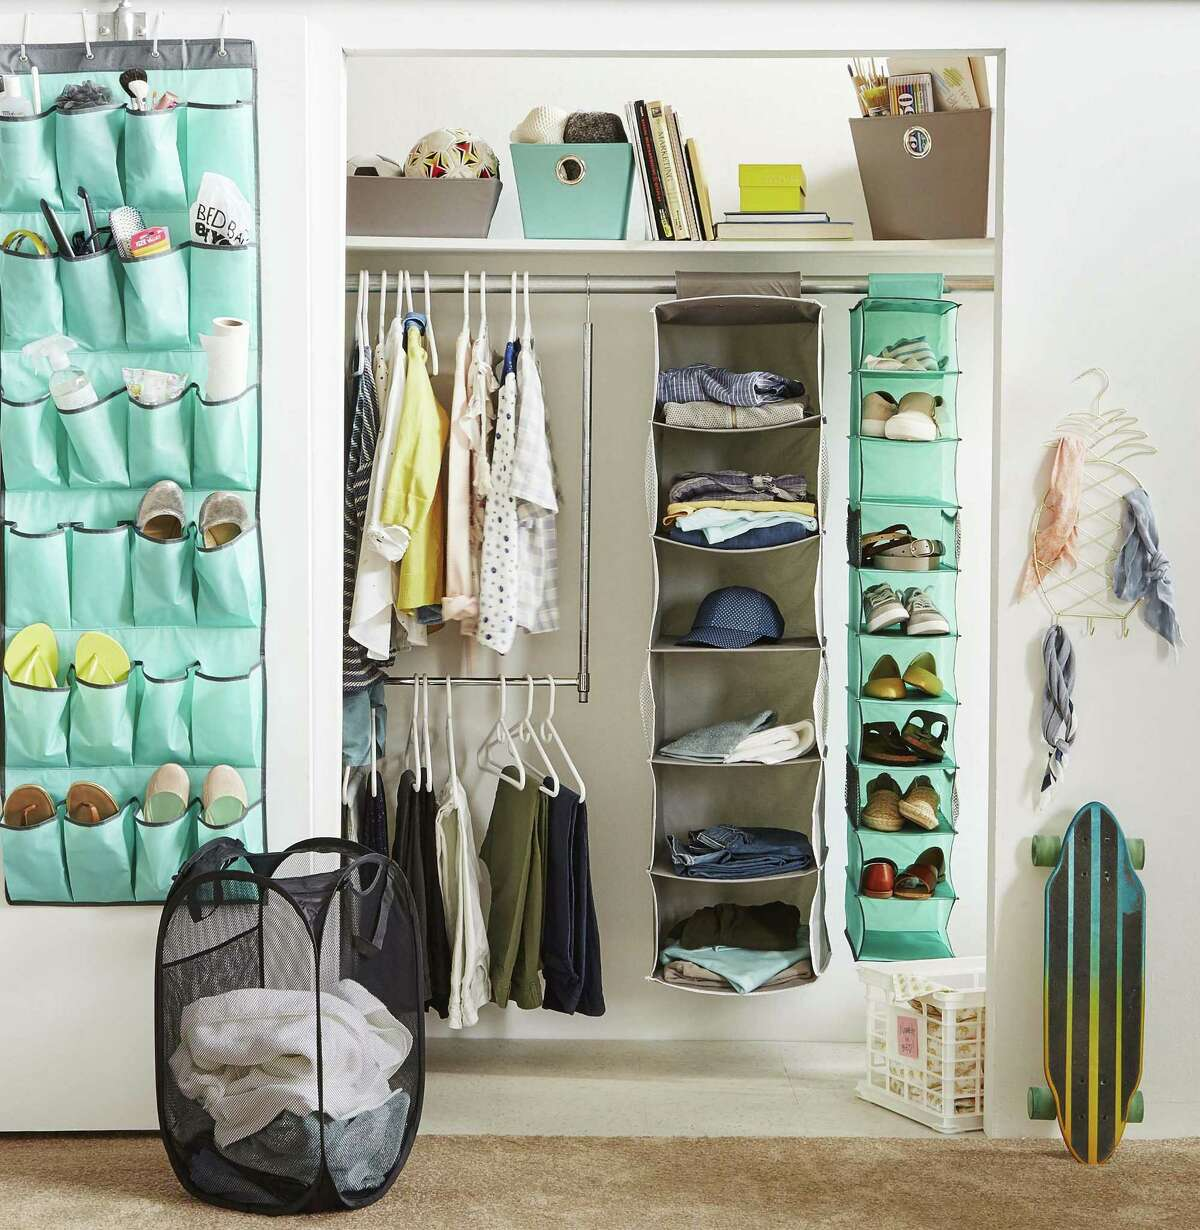 Every college dorm closet is different, but organizers will ensure that everything fits. Consider hanging organizers for shoes or clothes. Studio 3B's 10-shelf shoe organizer, $14.99, or 6-shelf sweater organizer; Bed, Bath & Beyond